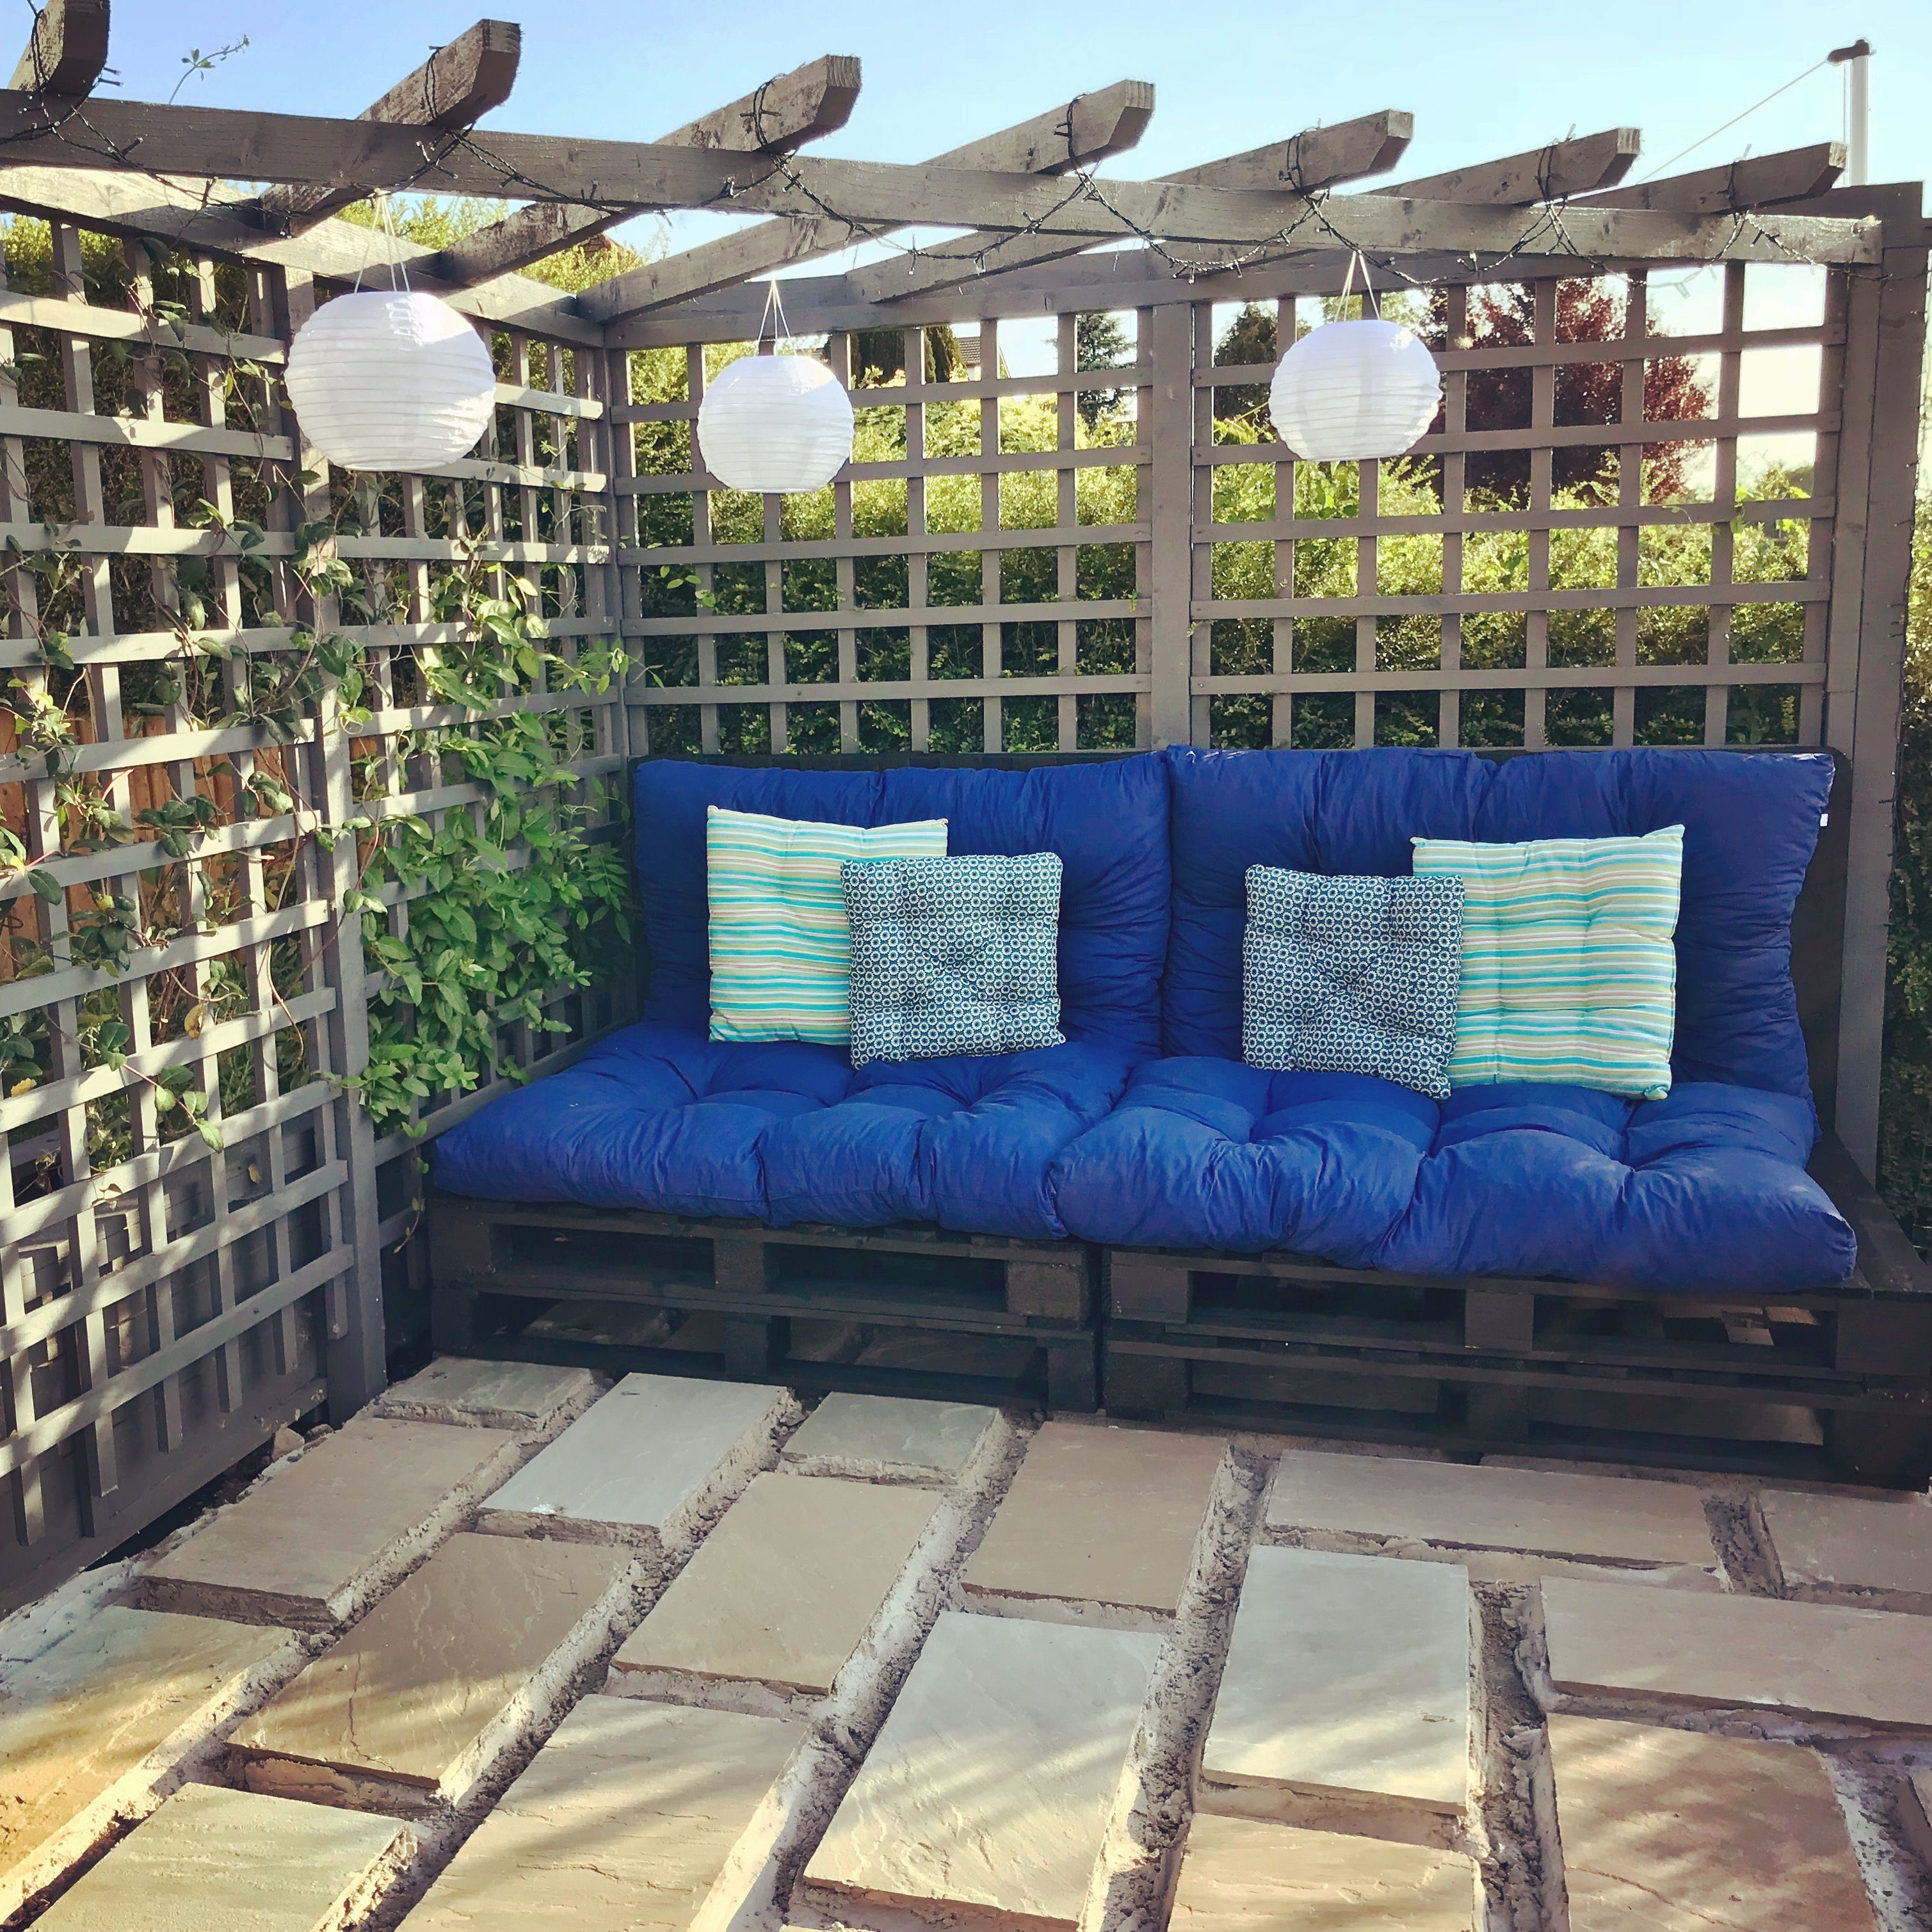 Pallet Sofa Made From Uk Size Pallets 4 Seat Dajar Cushions Used To Fit This